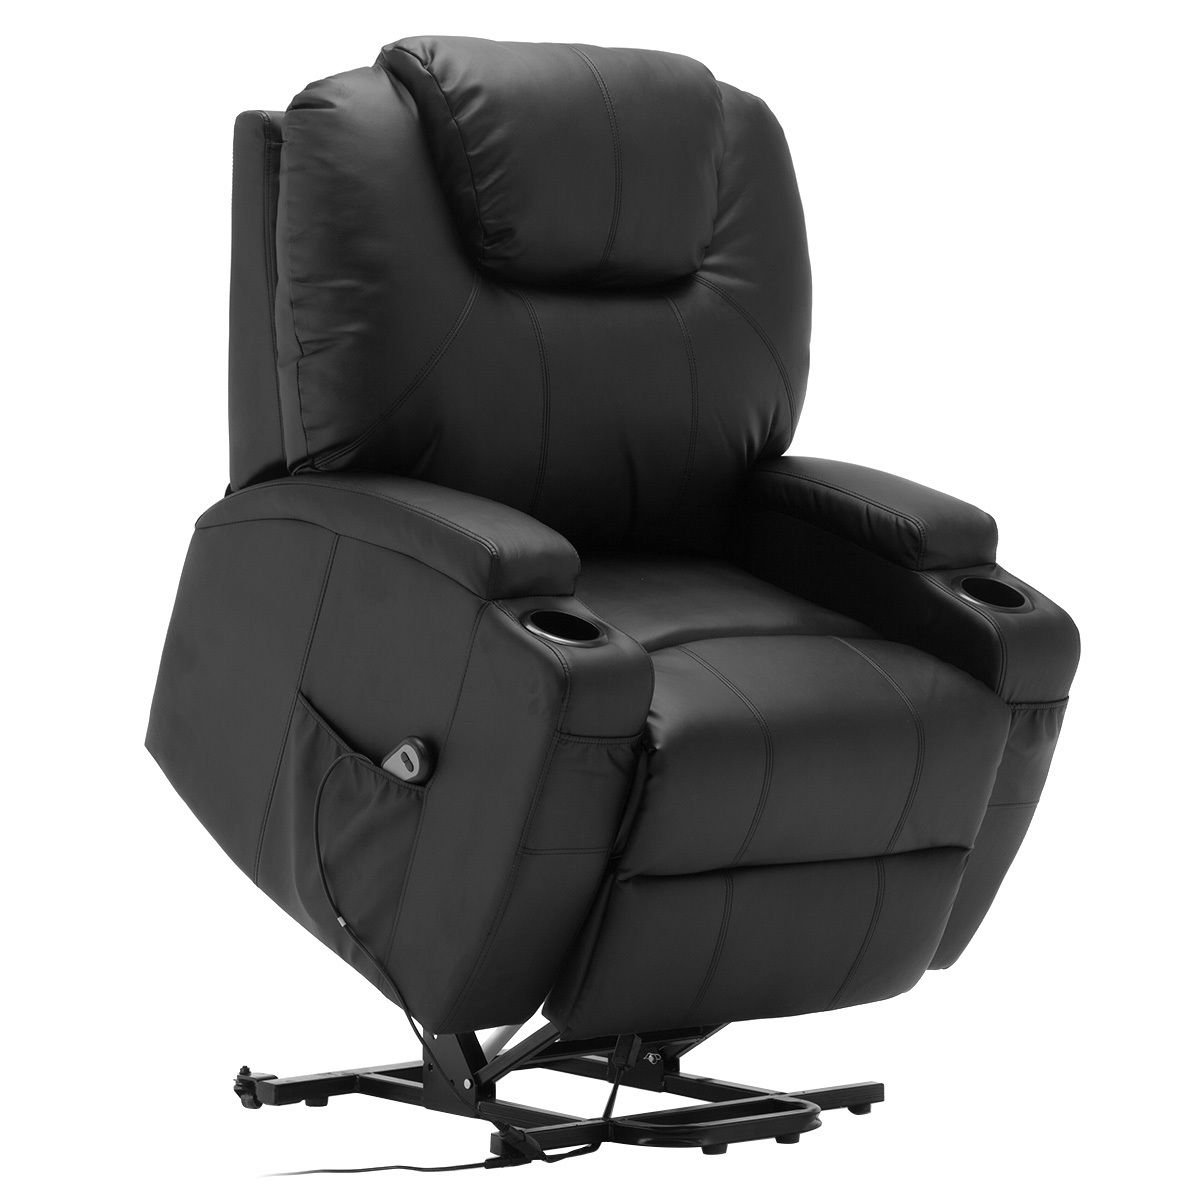 Amazon.com Tangkula Electric Lift Power Recliner Chair Heated Massage Sofa Lounge w/ Remote Control Kitchen u0026 Dining  sc 1 st  Amazon.com & Amazon.com: Tangkula Electric Lift Power Recliner Chair Heated ... islam-shia.org